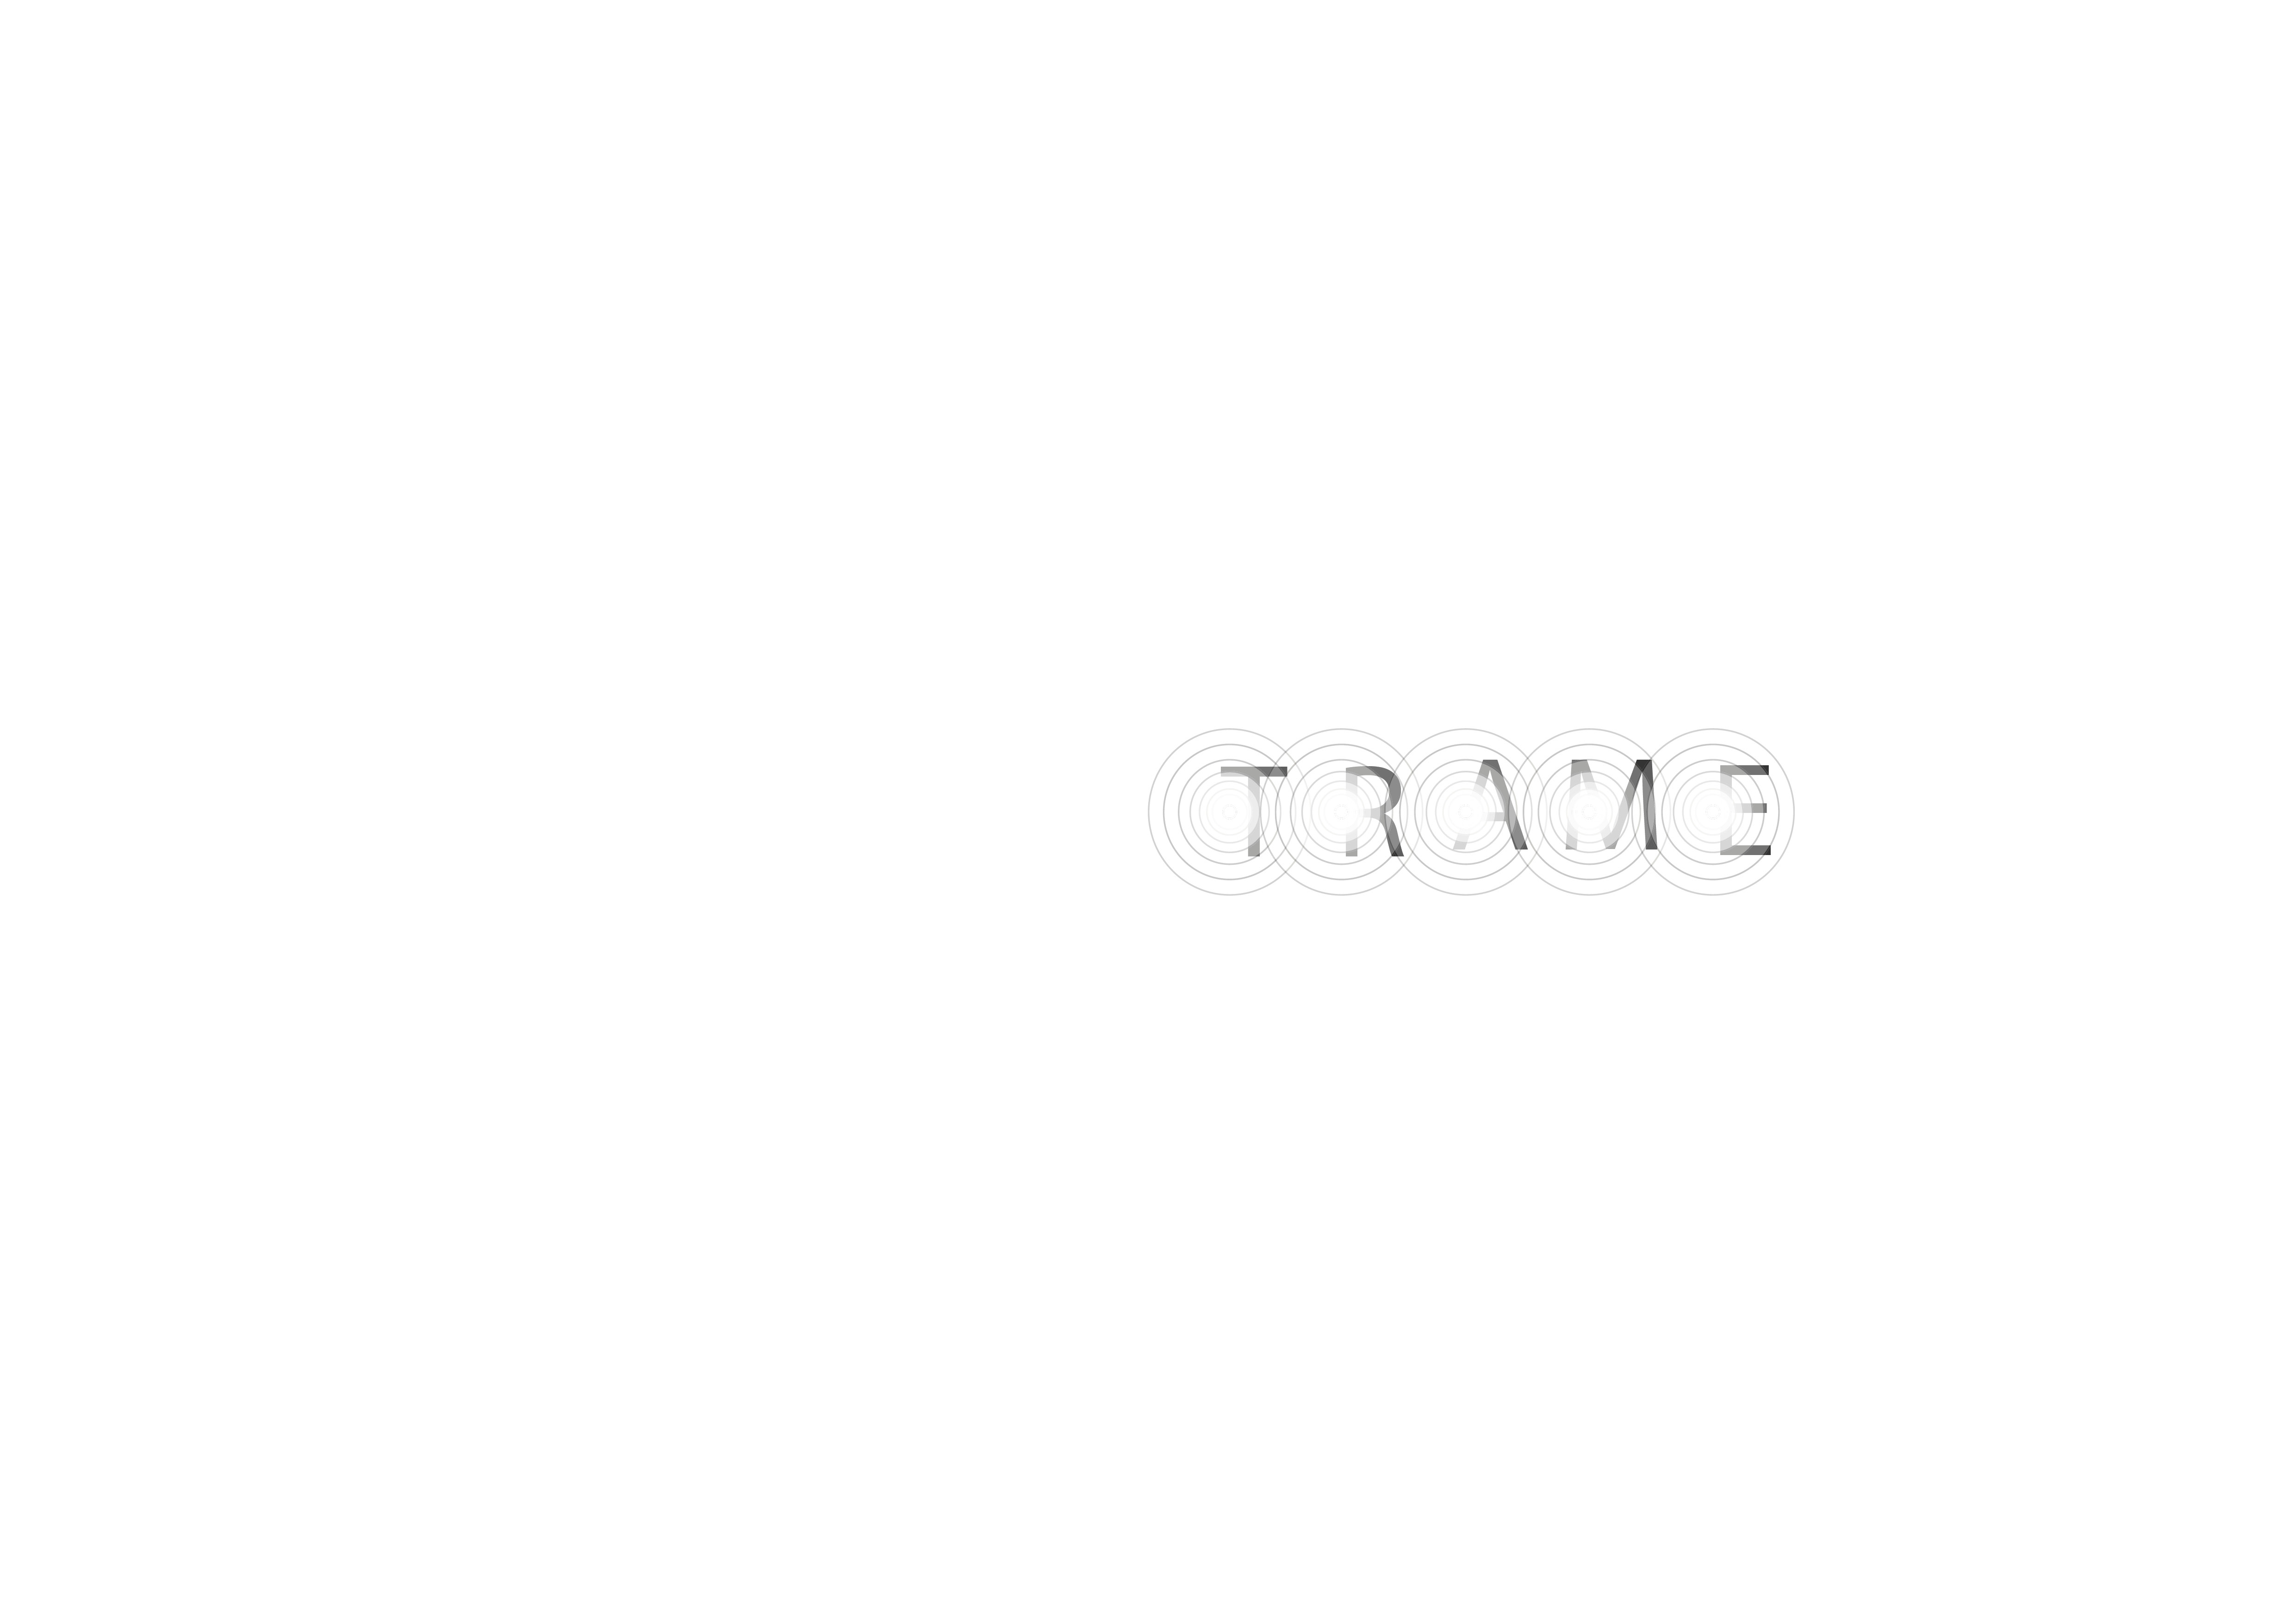 Trame | Typographie finale